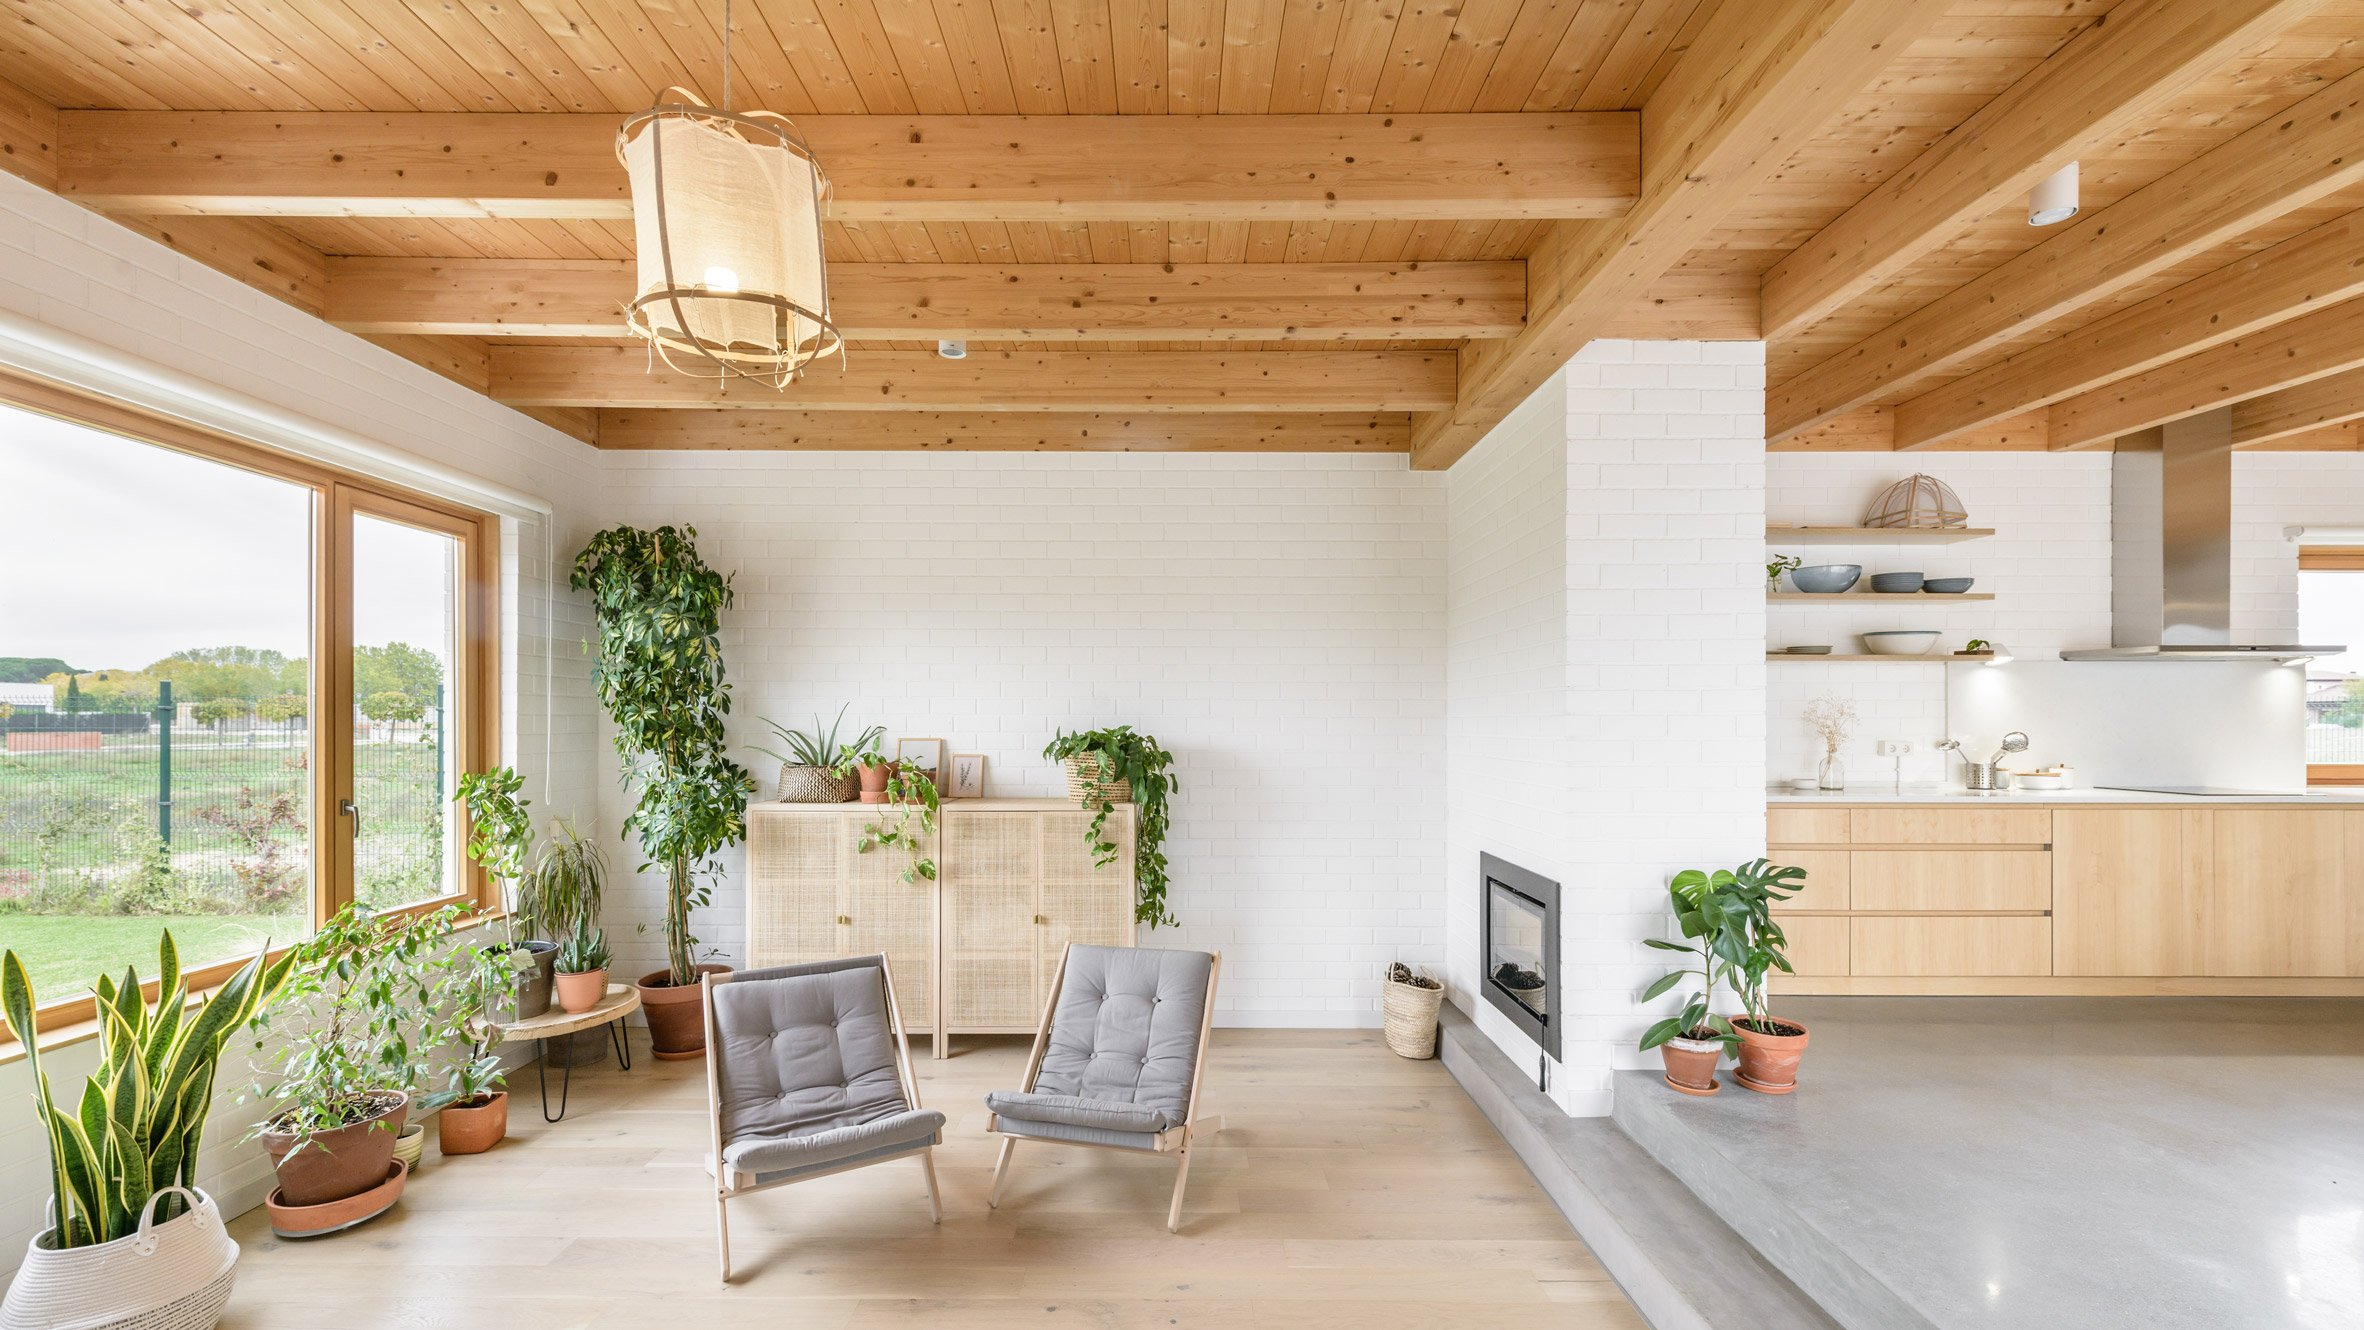 A white-walled living room with indoor plants